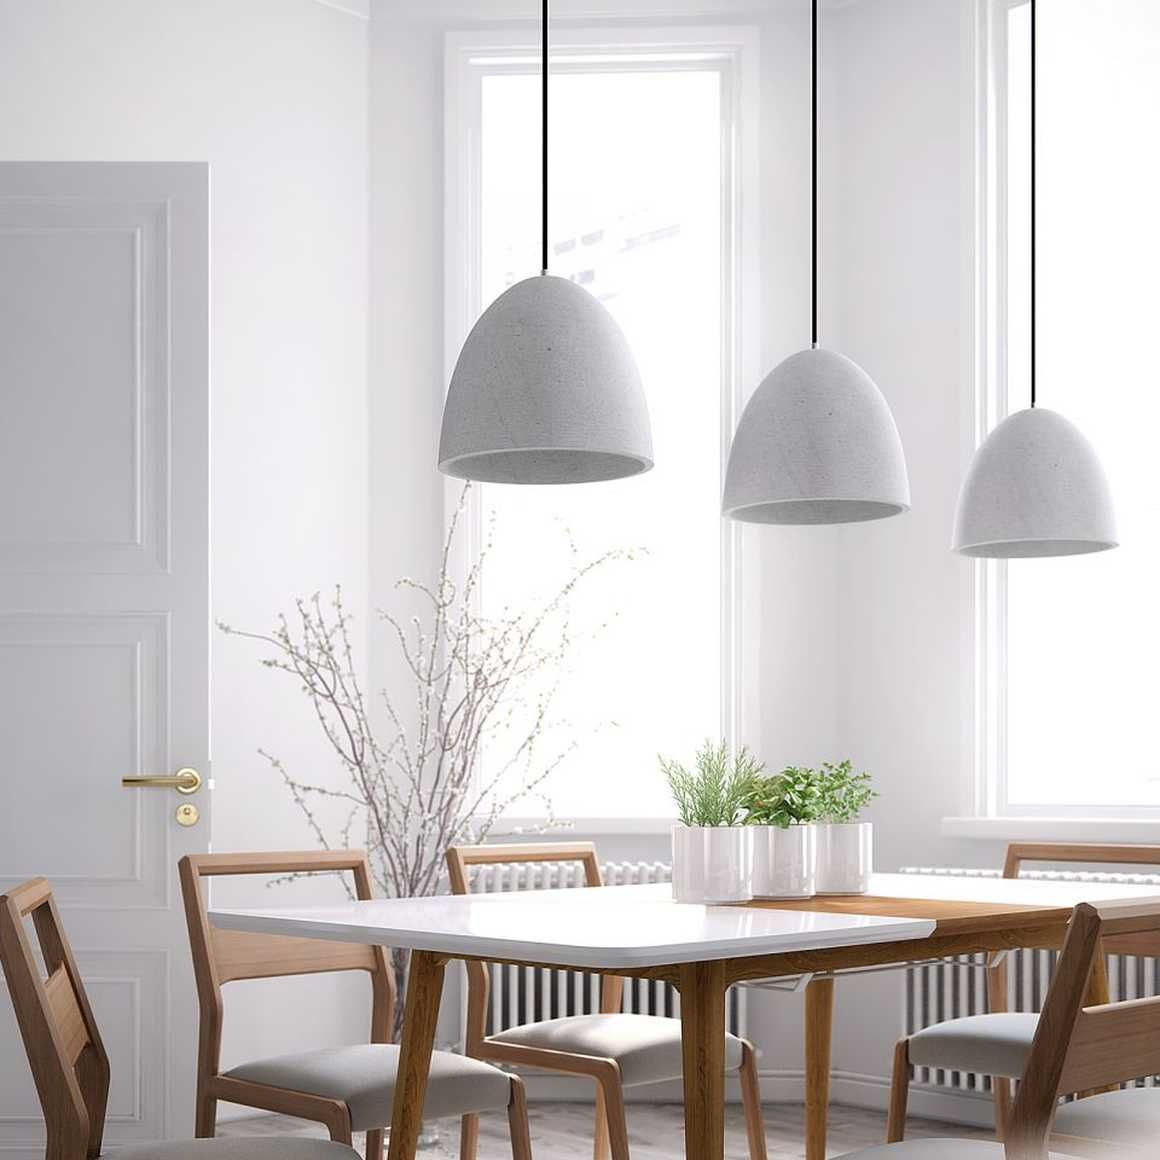 Modern Concrete Pendant Concrete Shade Rove Concepts Dining Room Lamps Dining Table Pendant Light Pendant Lighting Dining Room